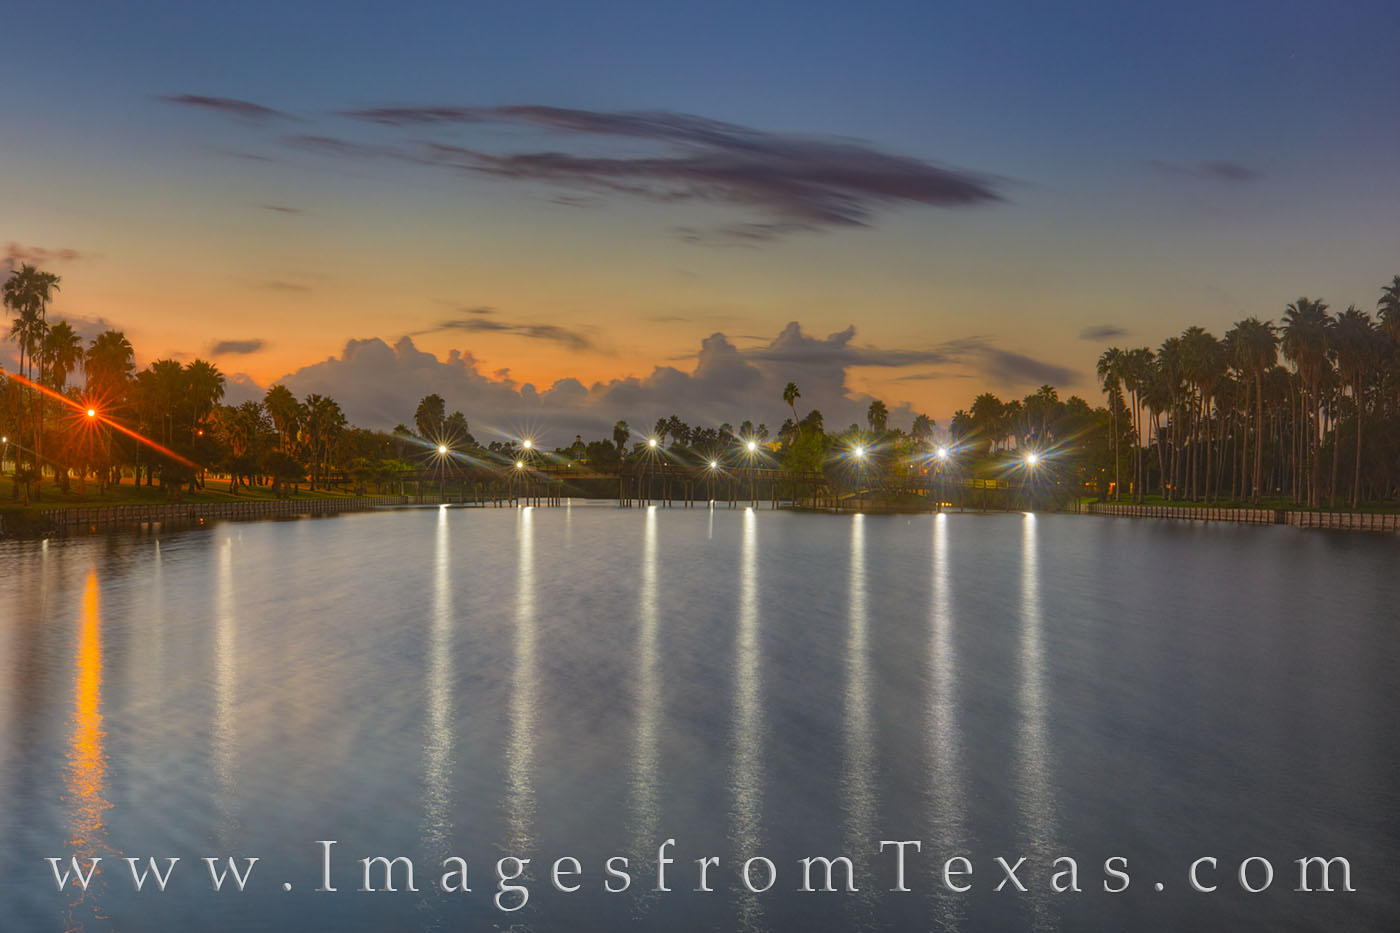 brownsville, resaca, morning, sunrise, bridge, reflection, water, south texas, border, photo